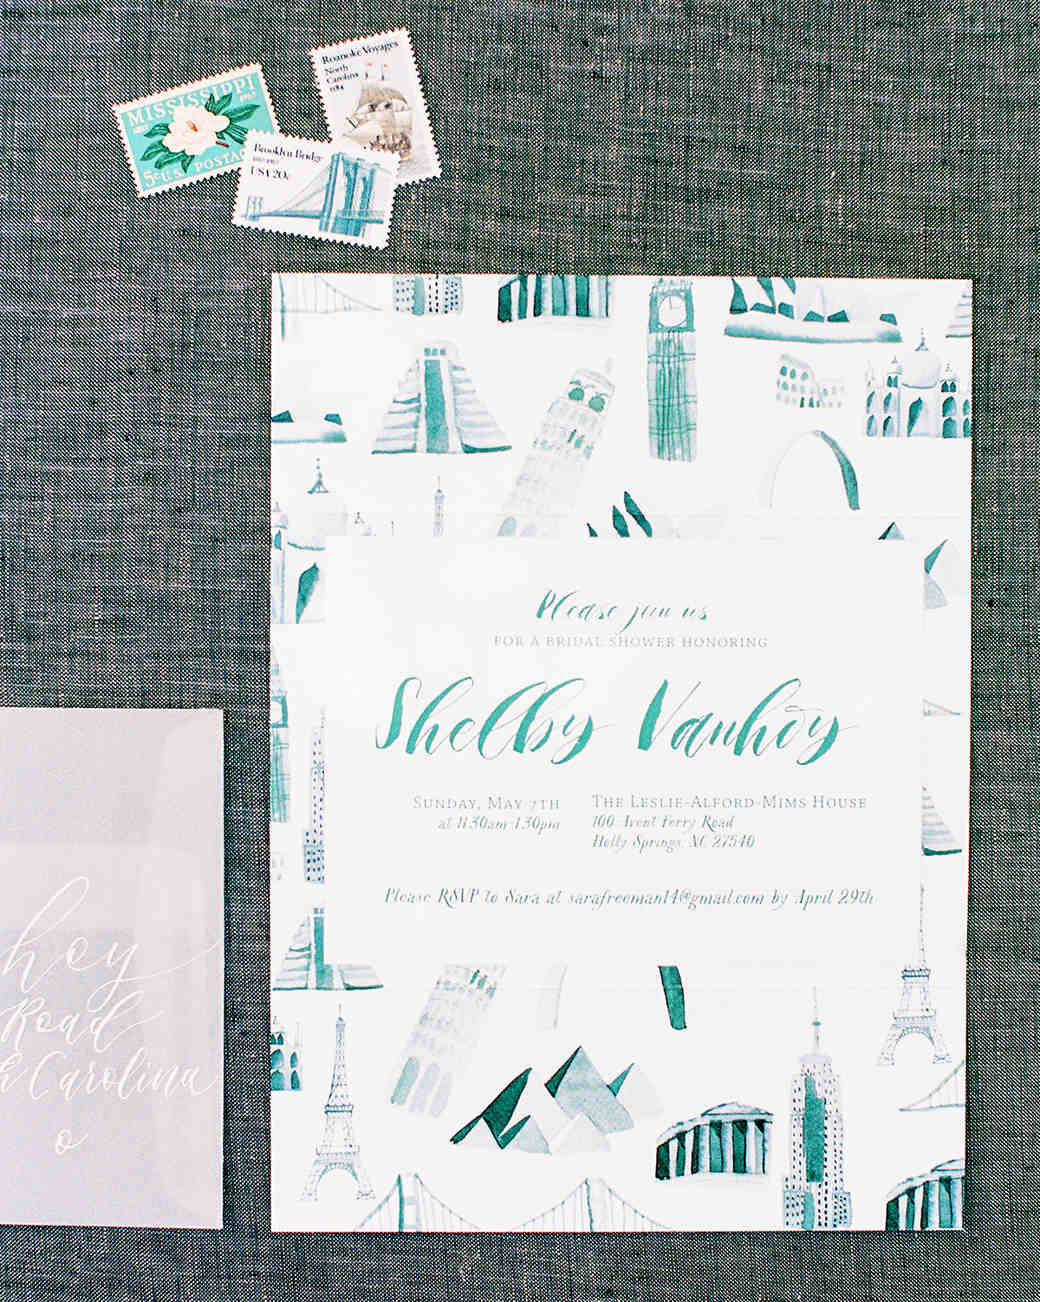 wedding invitation featuring different landmarks